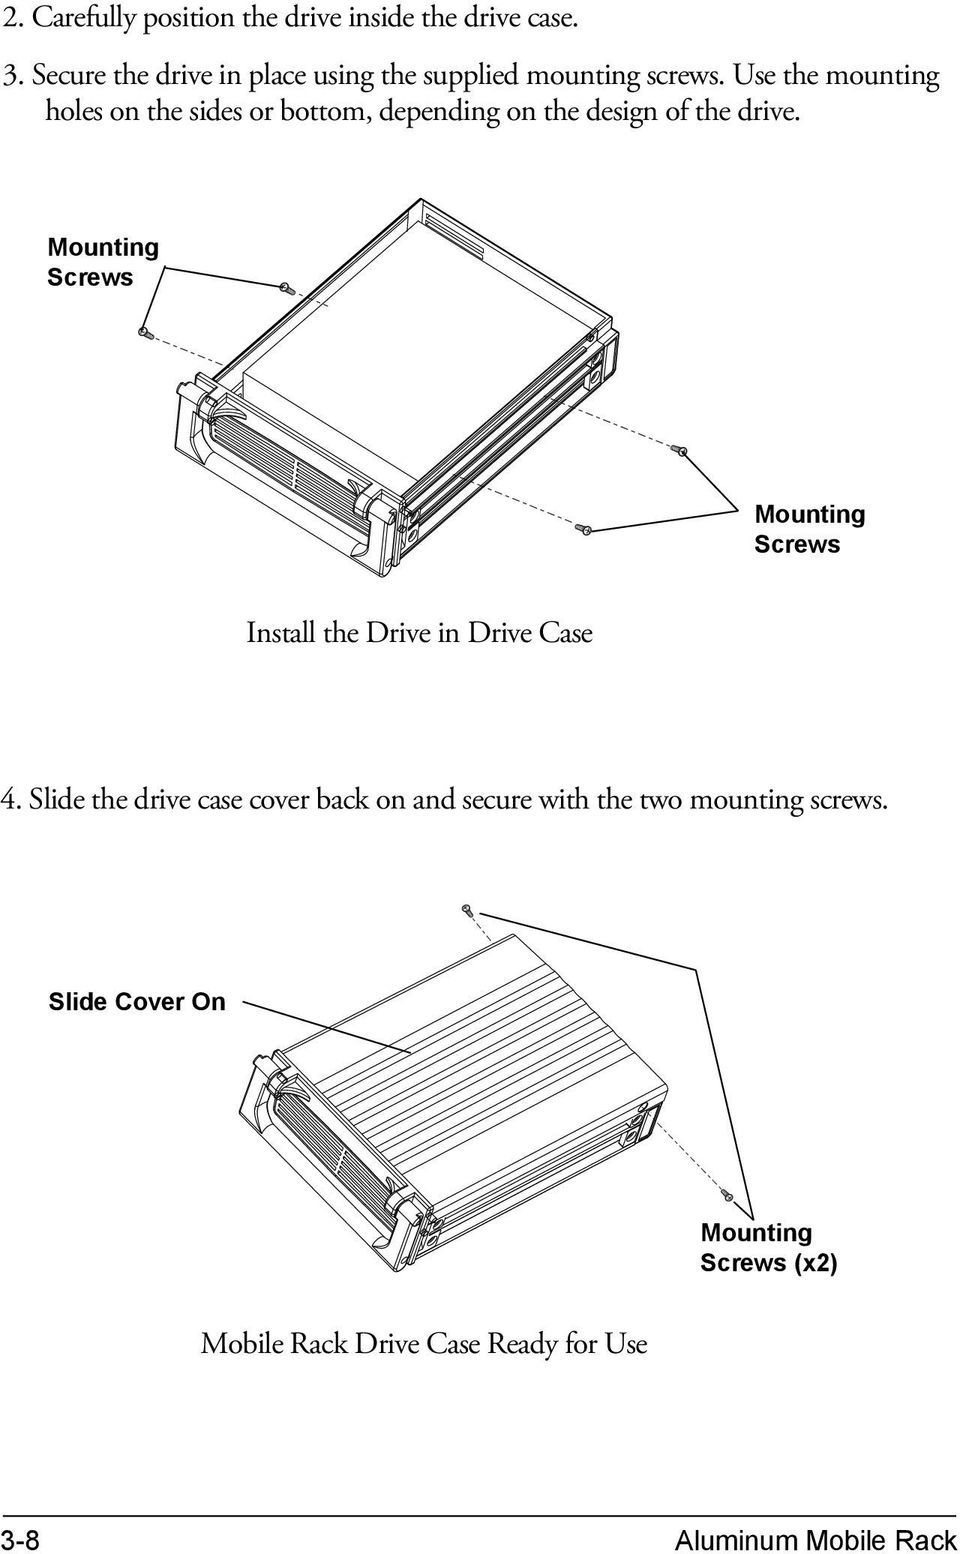 Use the mounting holes on the sides or bottom, depending on the design of the drive.